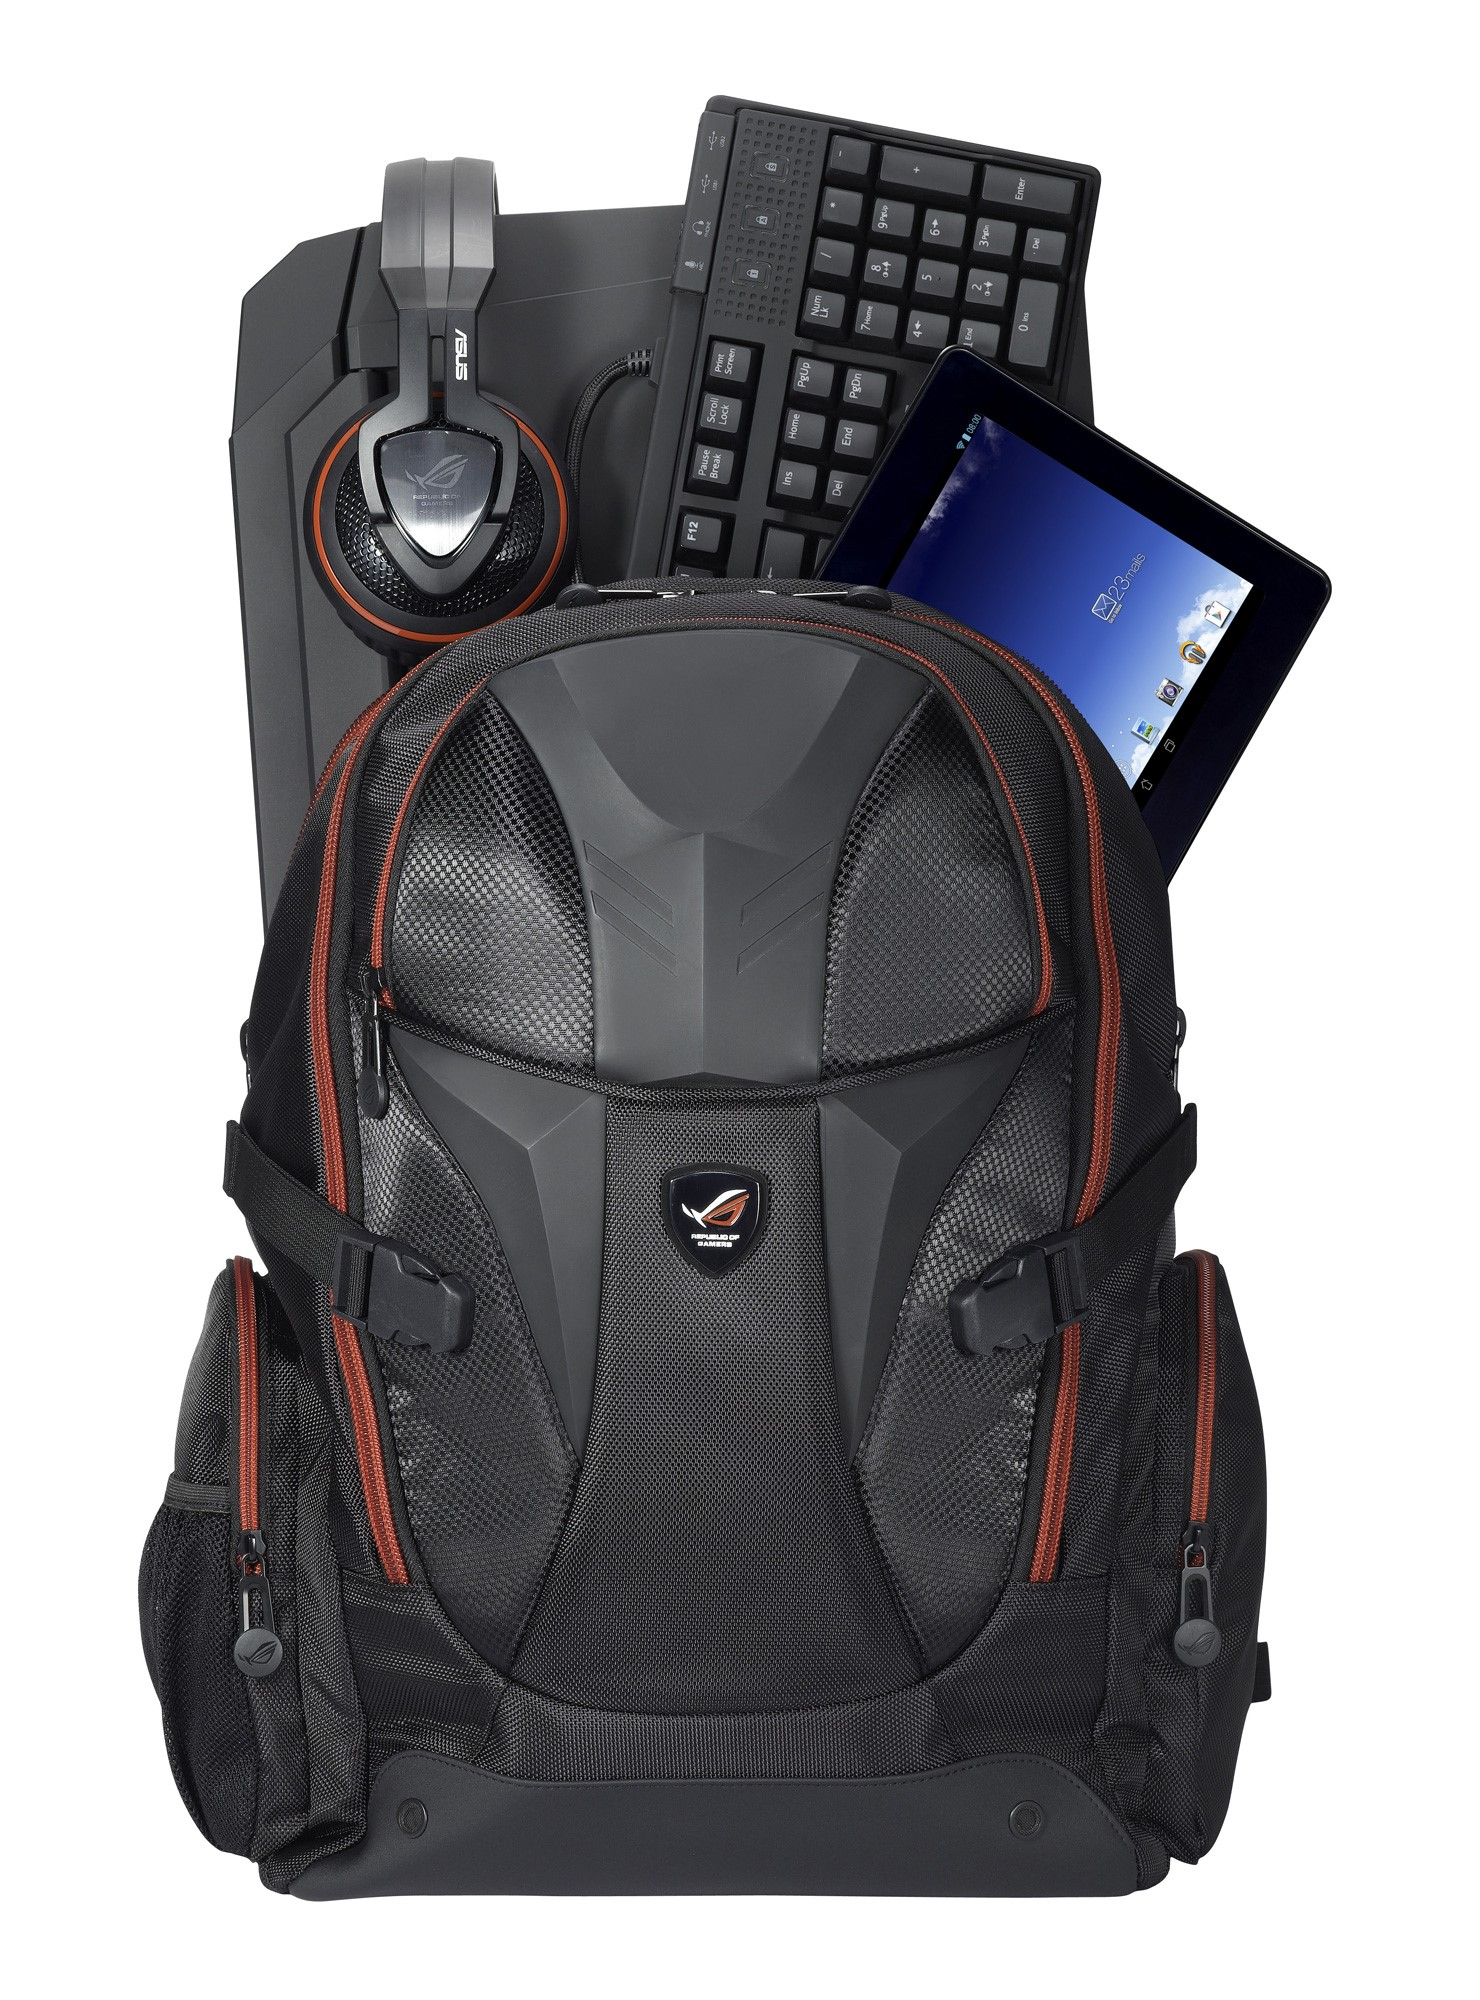 Рис.2. ASUS ROG NOMAD Backpack 17